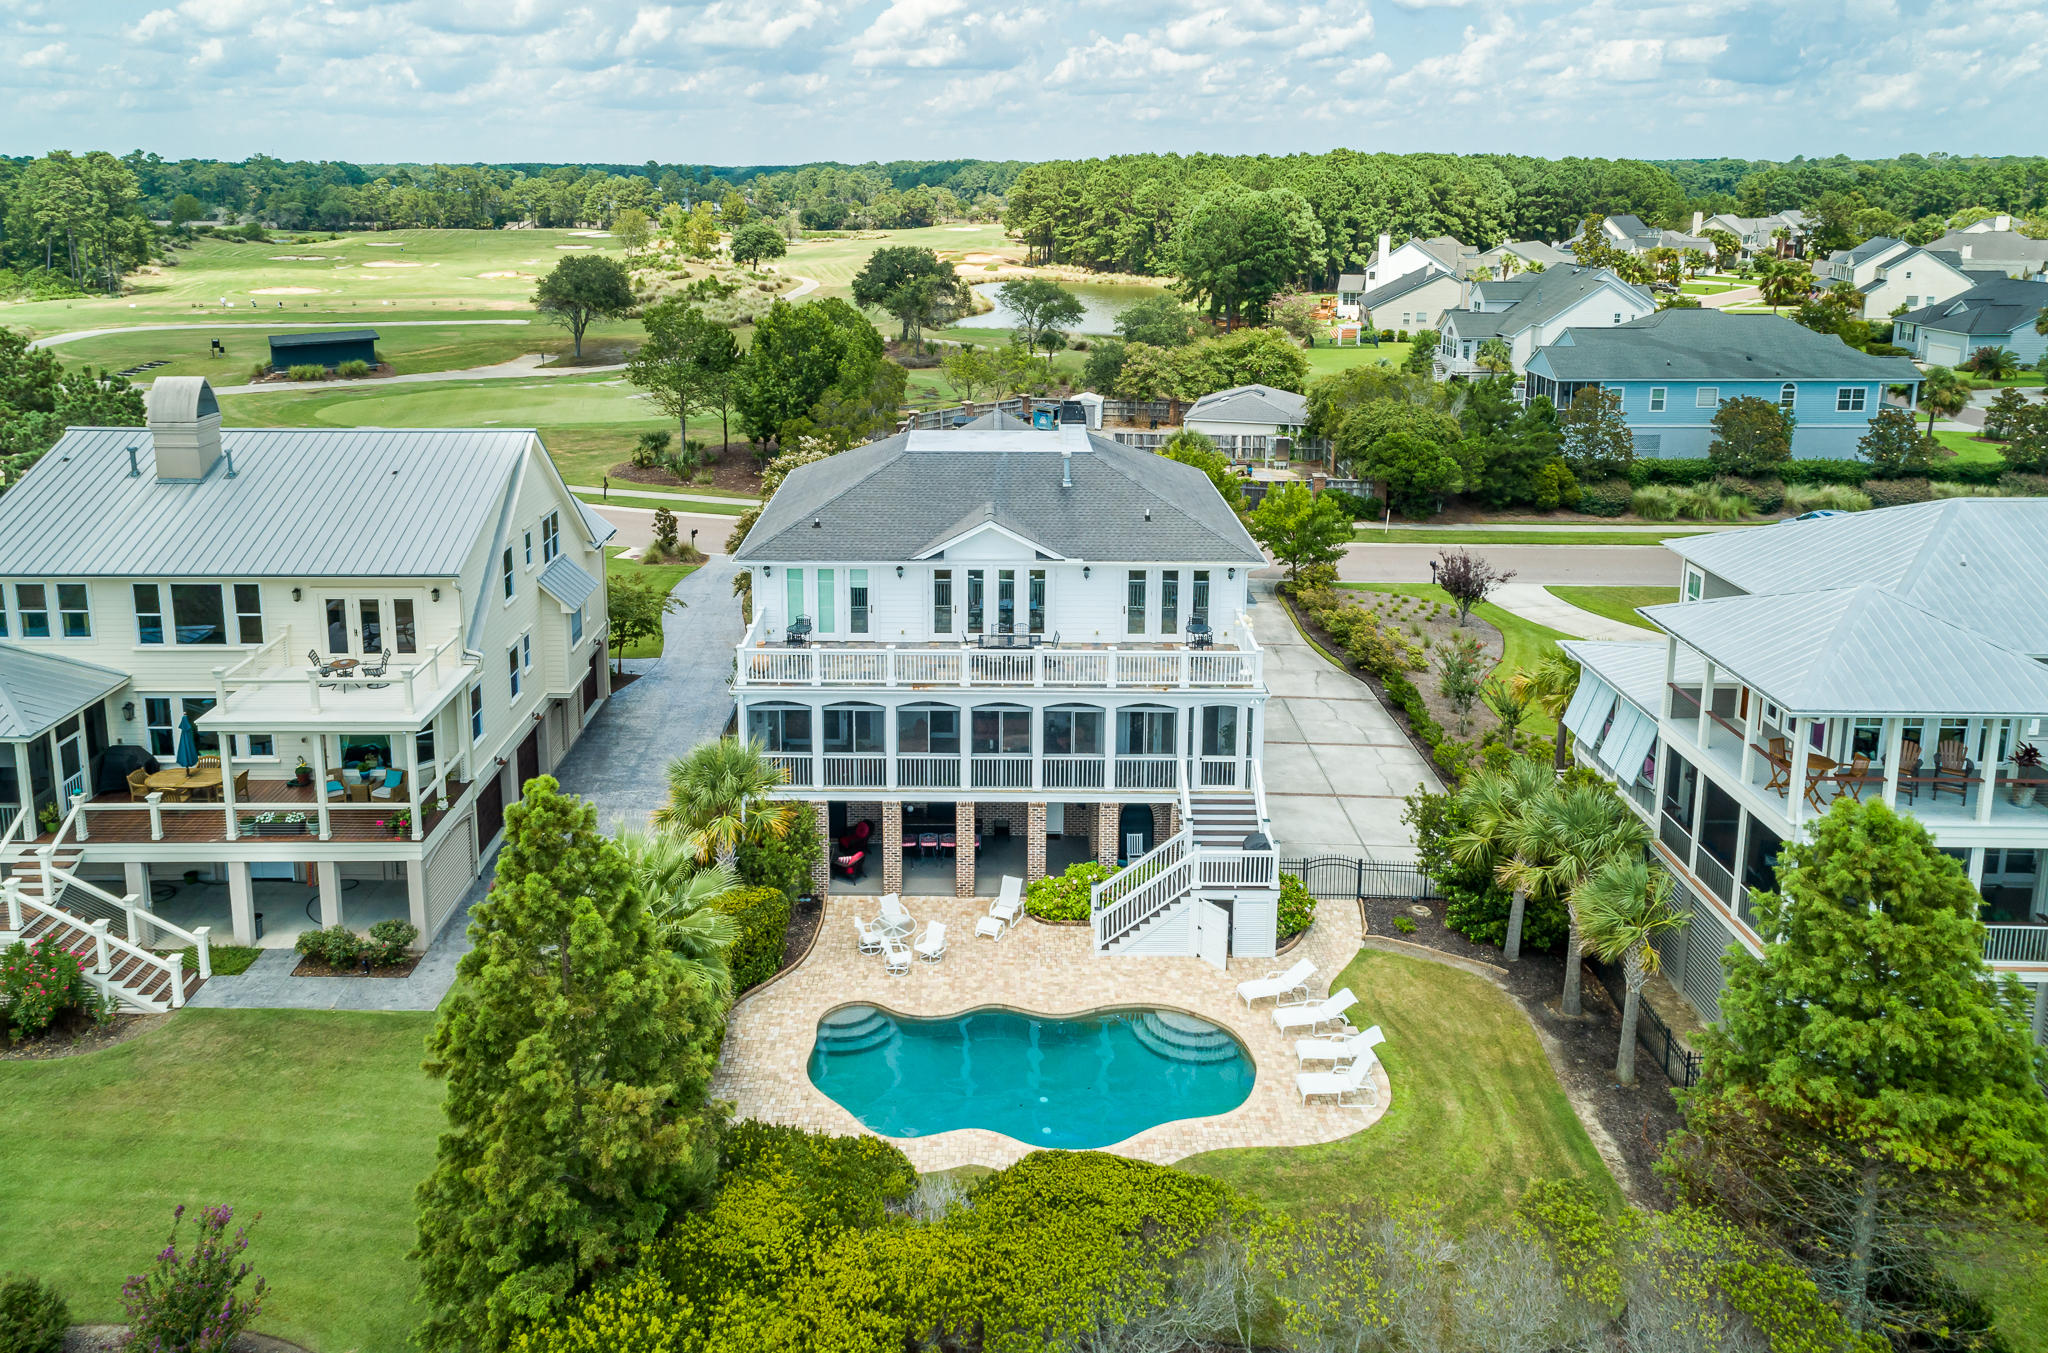 Rivertowne Country Club Homes For Sale - 1652 Rivertowne Country Club, Mount Pleasant, SC - 66